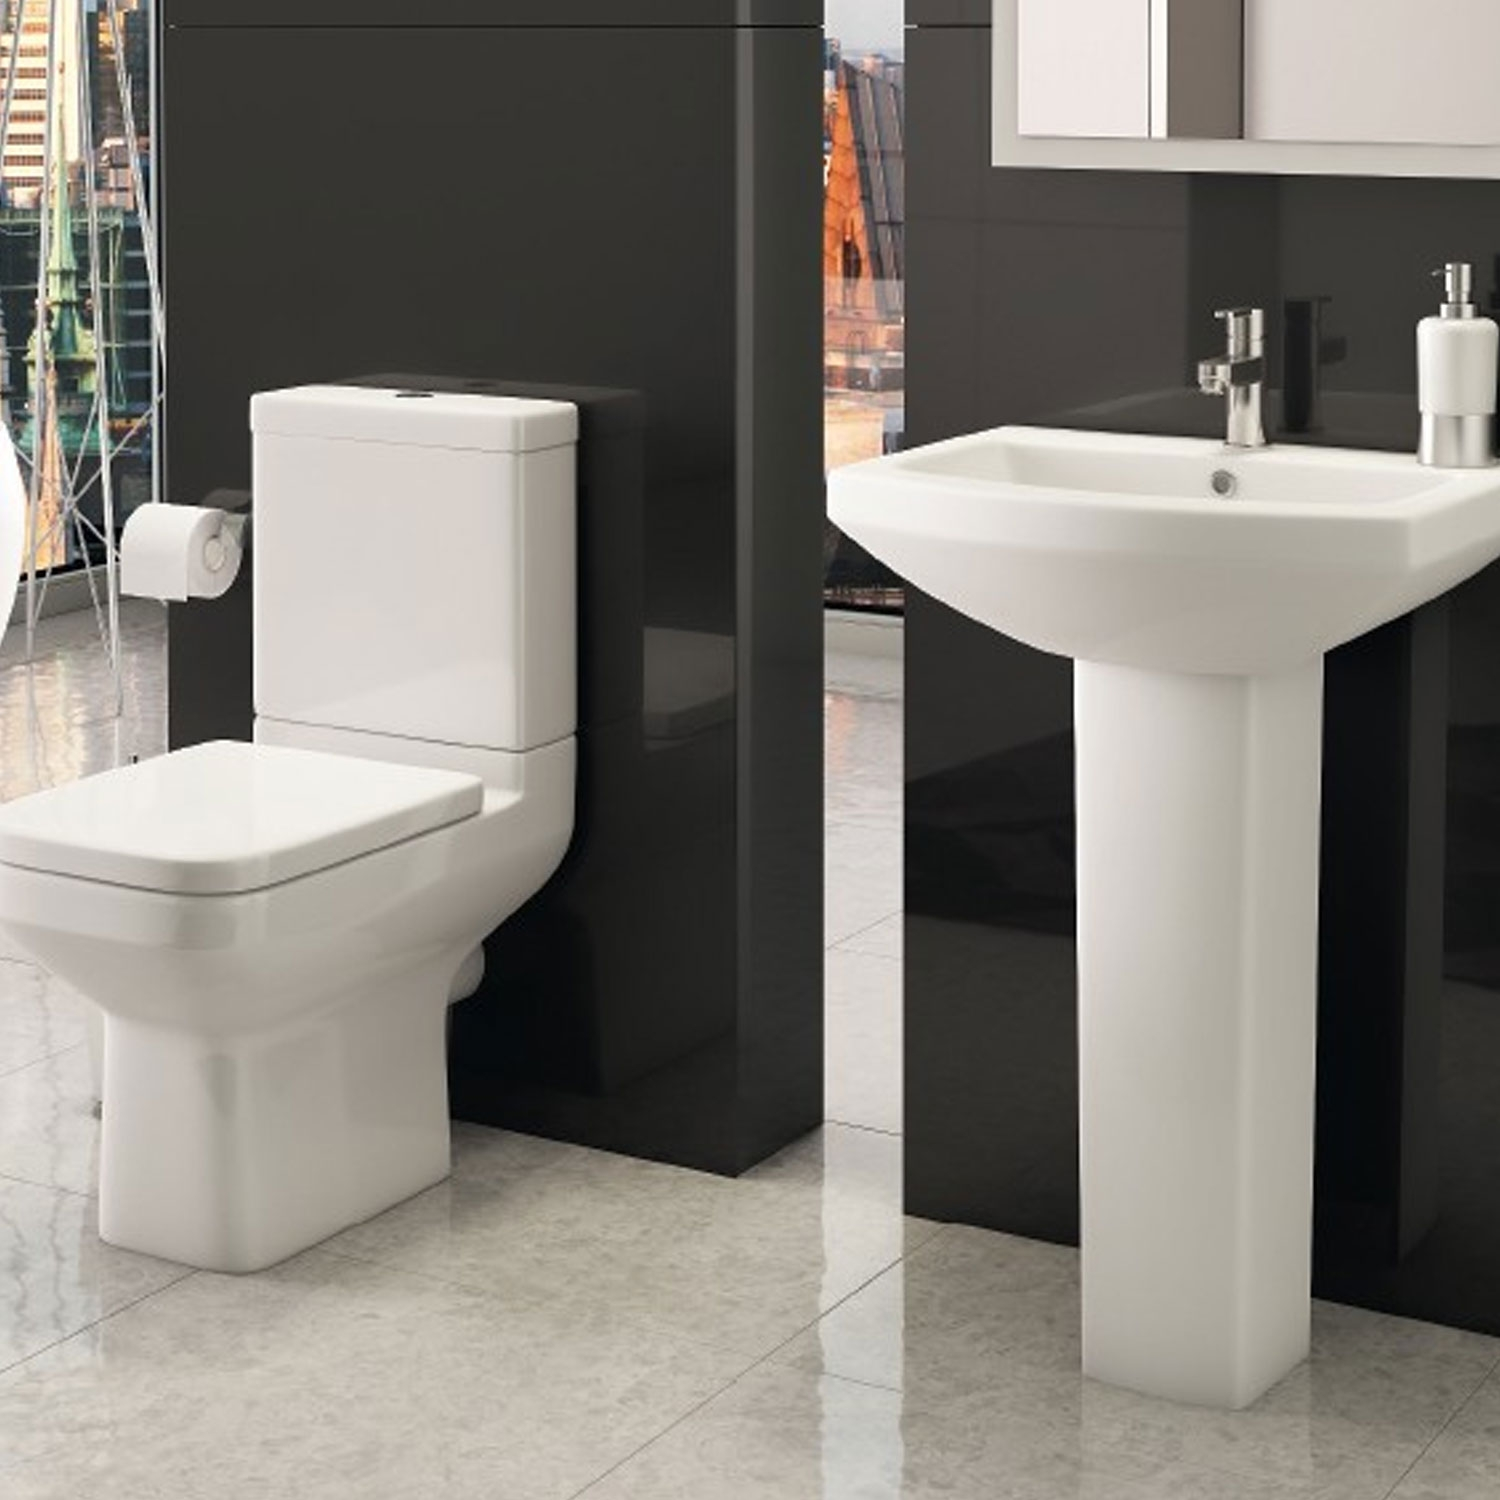 Prestige Trim Close Coupled Toilet WC with Cistern - Soft Close Seat